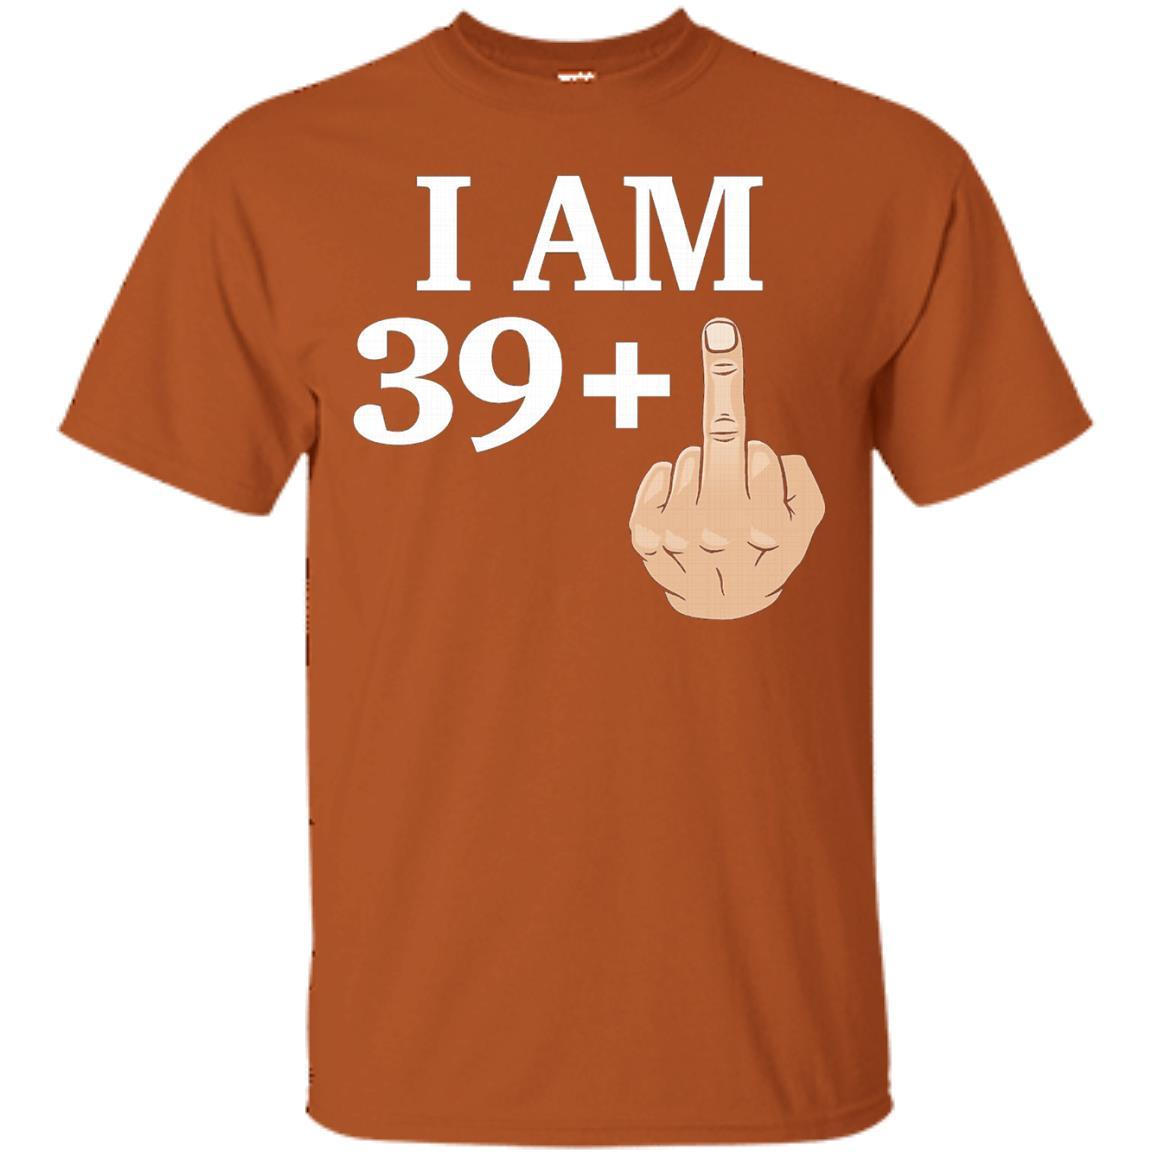 39 Plus 1 40th Birthday Made In 1977 T-Shirt